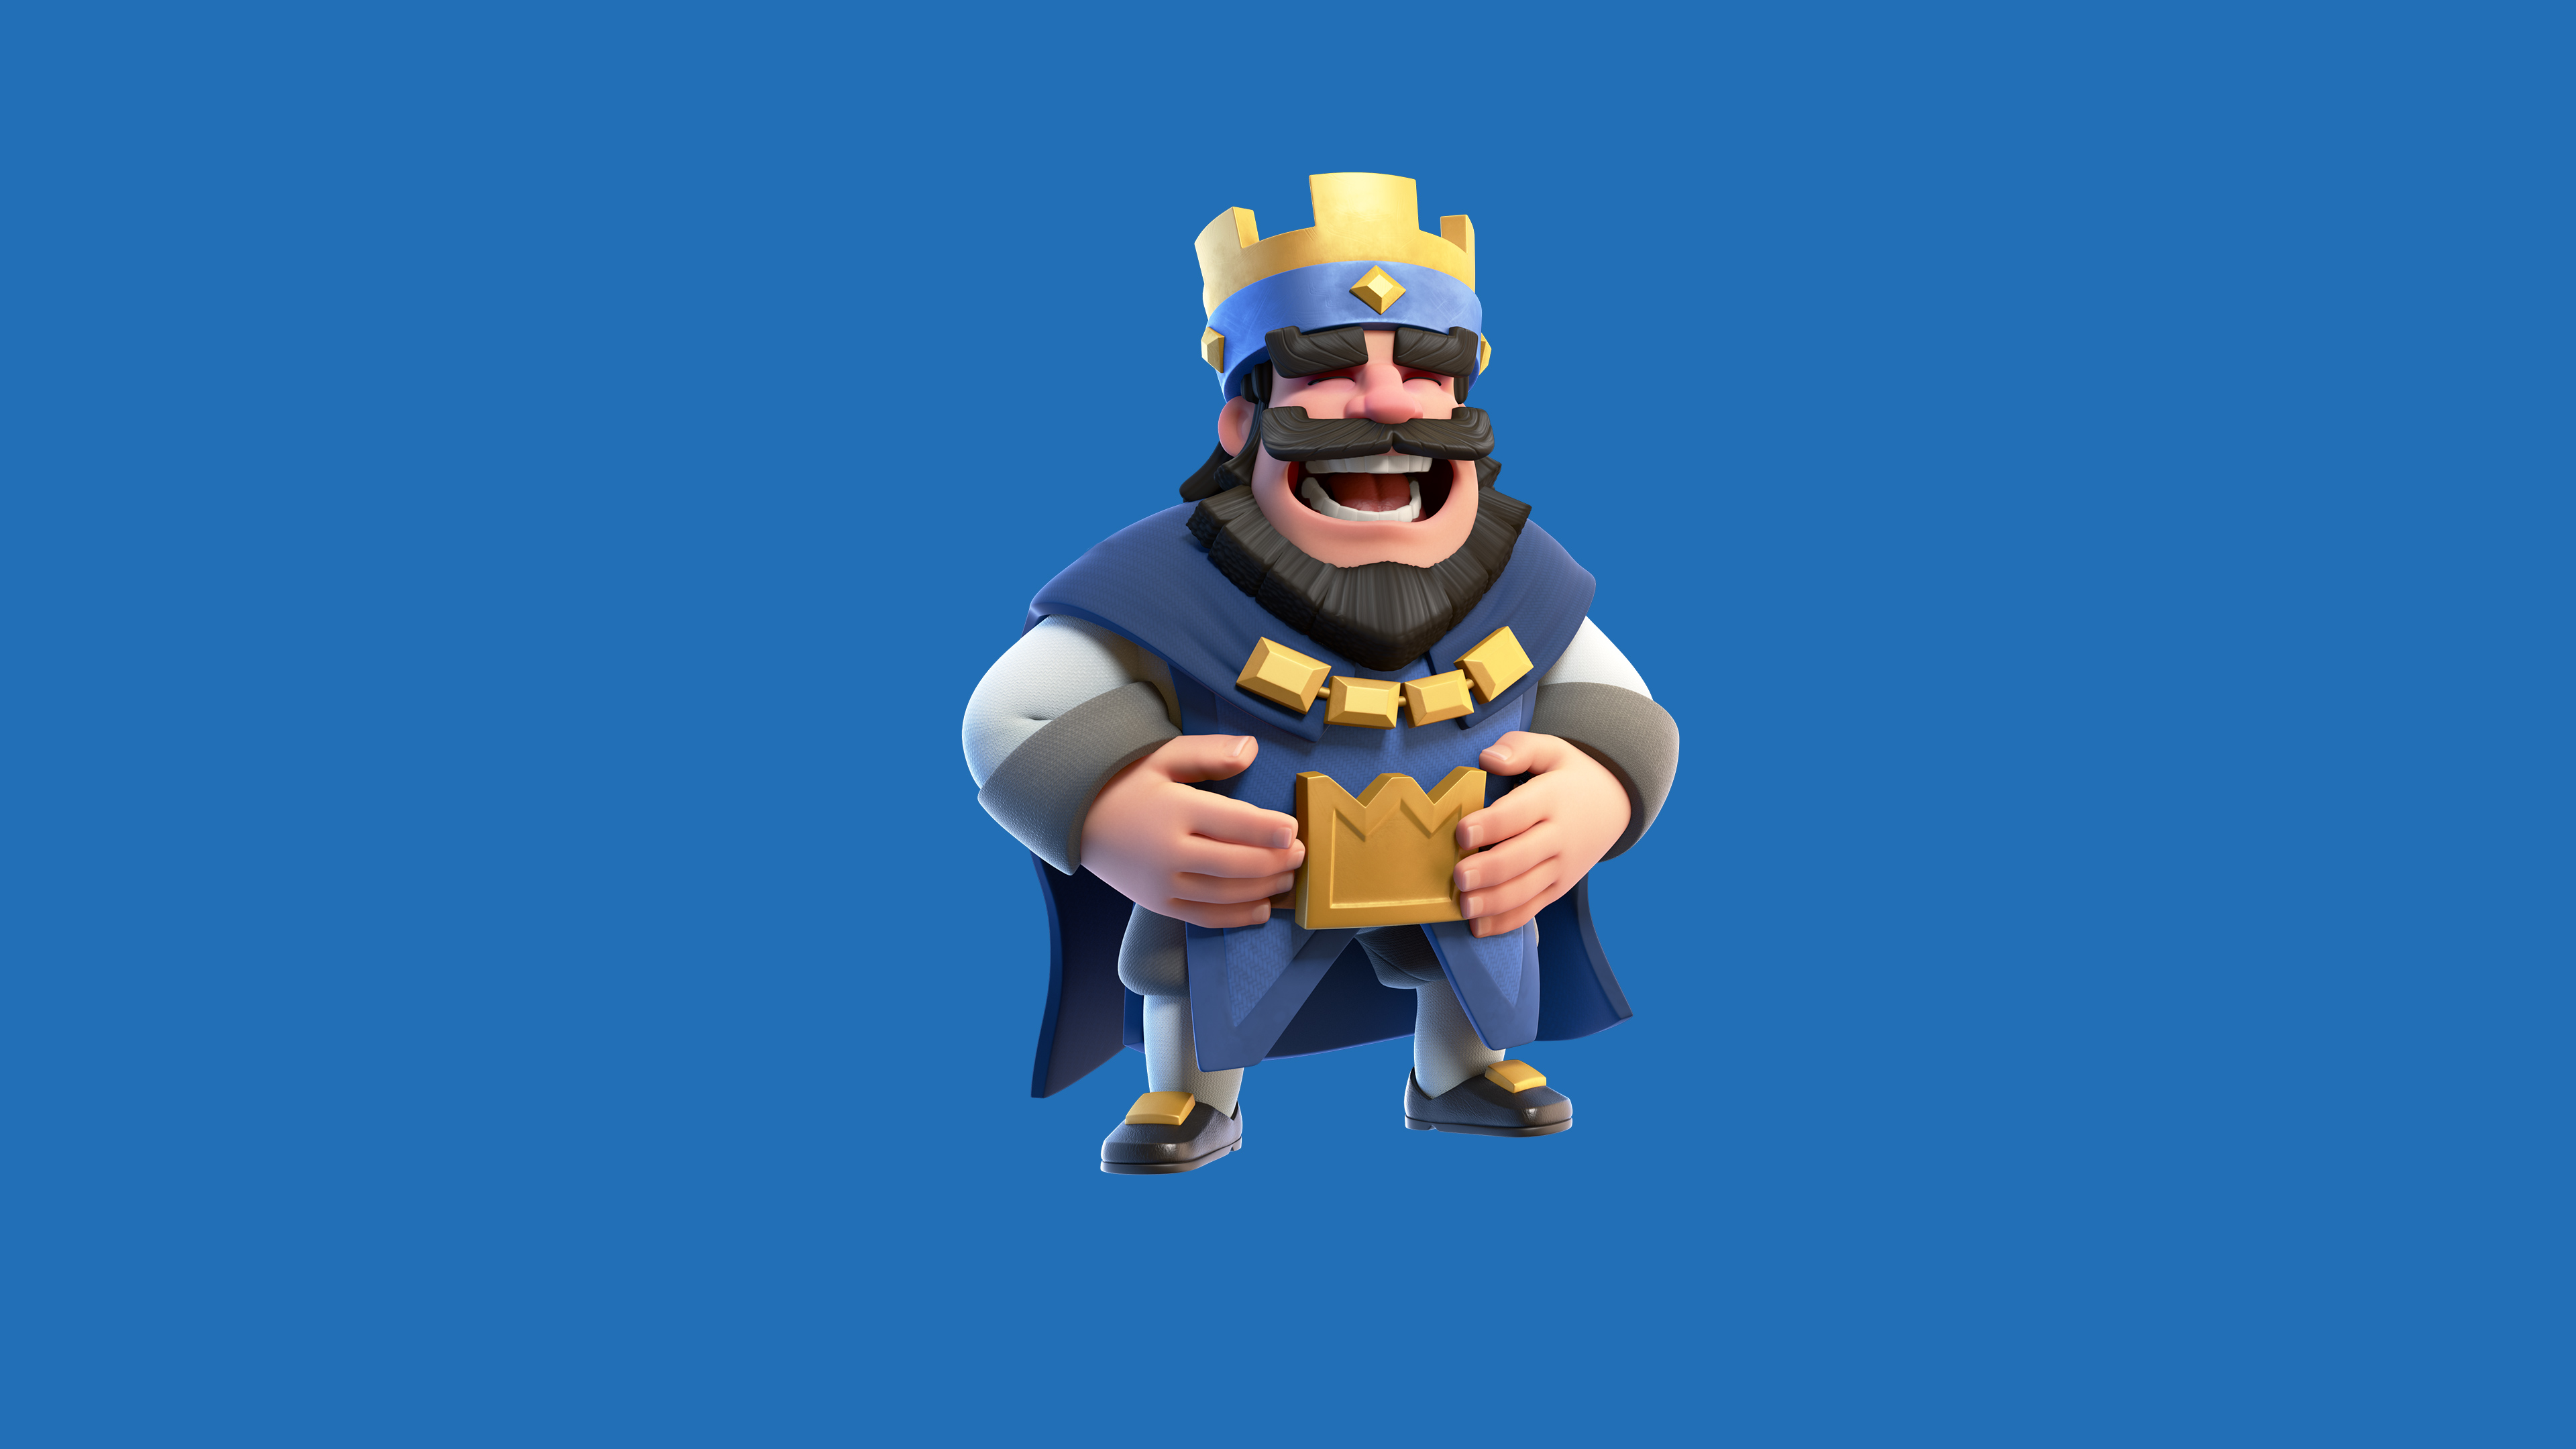 clash royale blue king 1536009009 - Clash Royale Blue King - supercell wallpapers, games wallpapers, clash royale wallpapers, 2016 games wallpapers